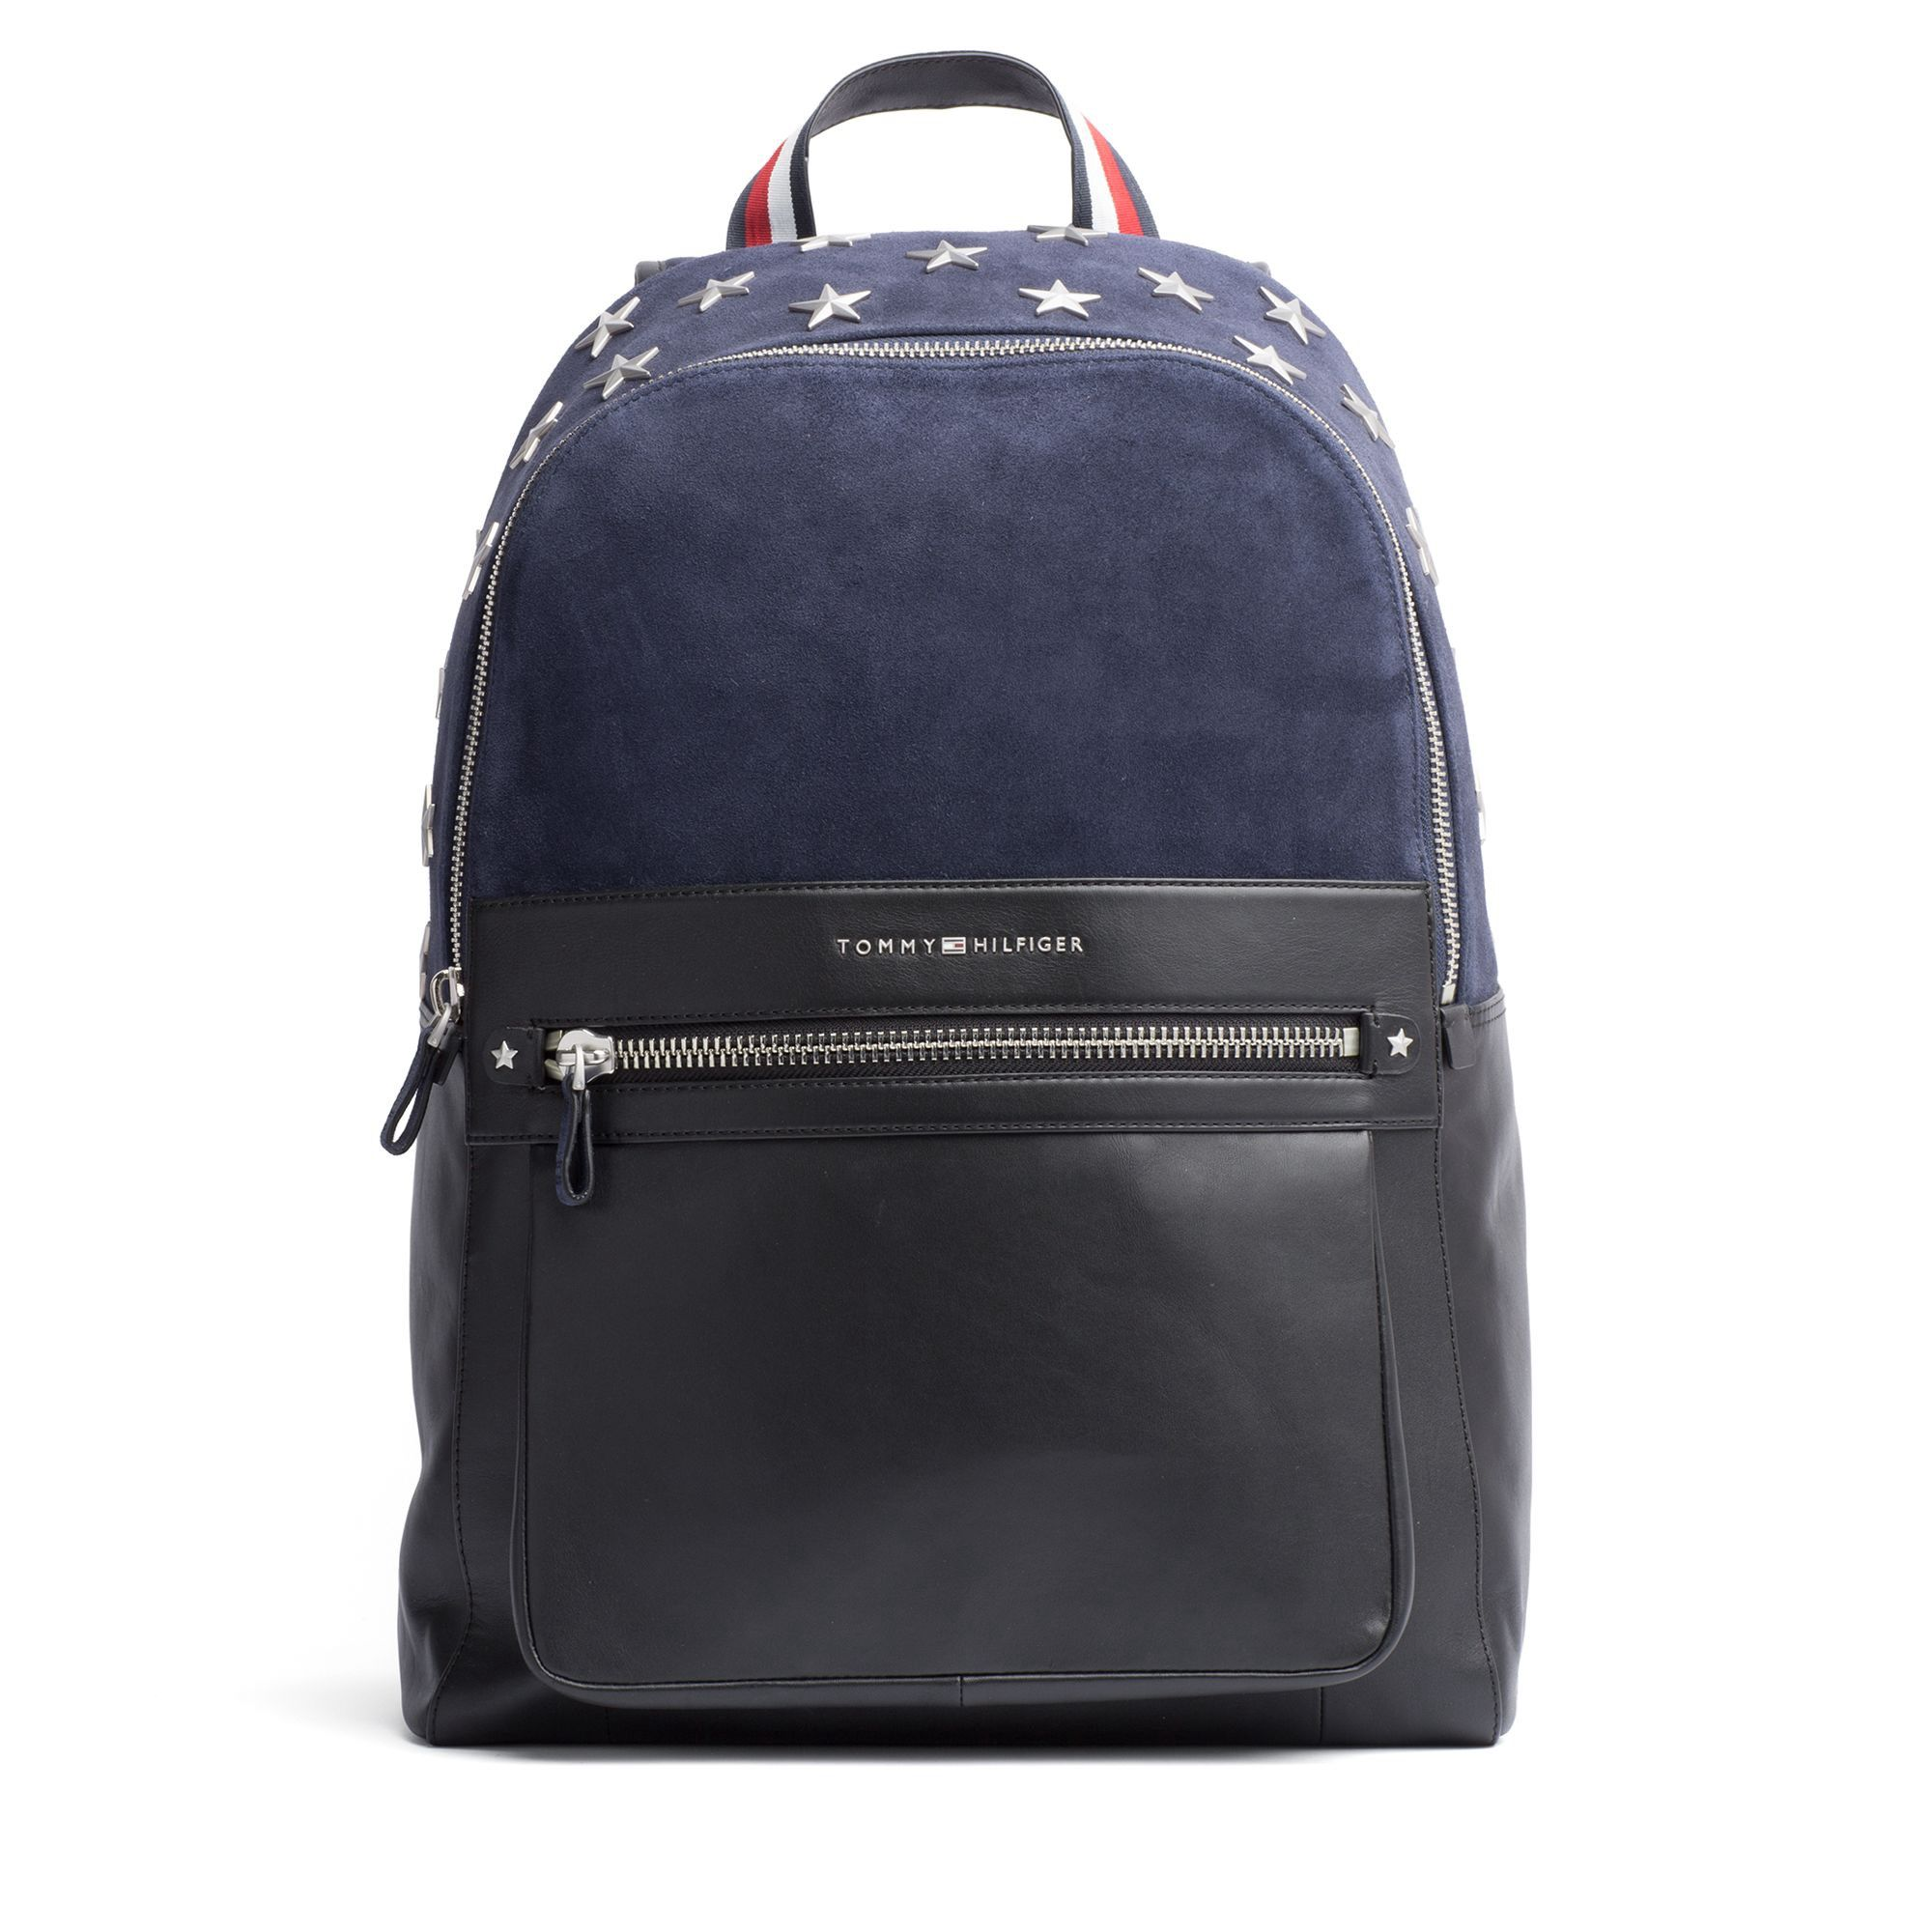 6a95f0cece50 TOMMY HILFIGER STAR STUDDED SUEDE BACPACK - NAVY MIX.  tommyhilfiger  bags   backpacks  suede